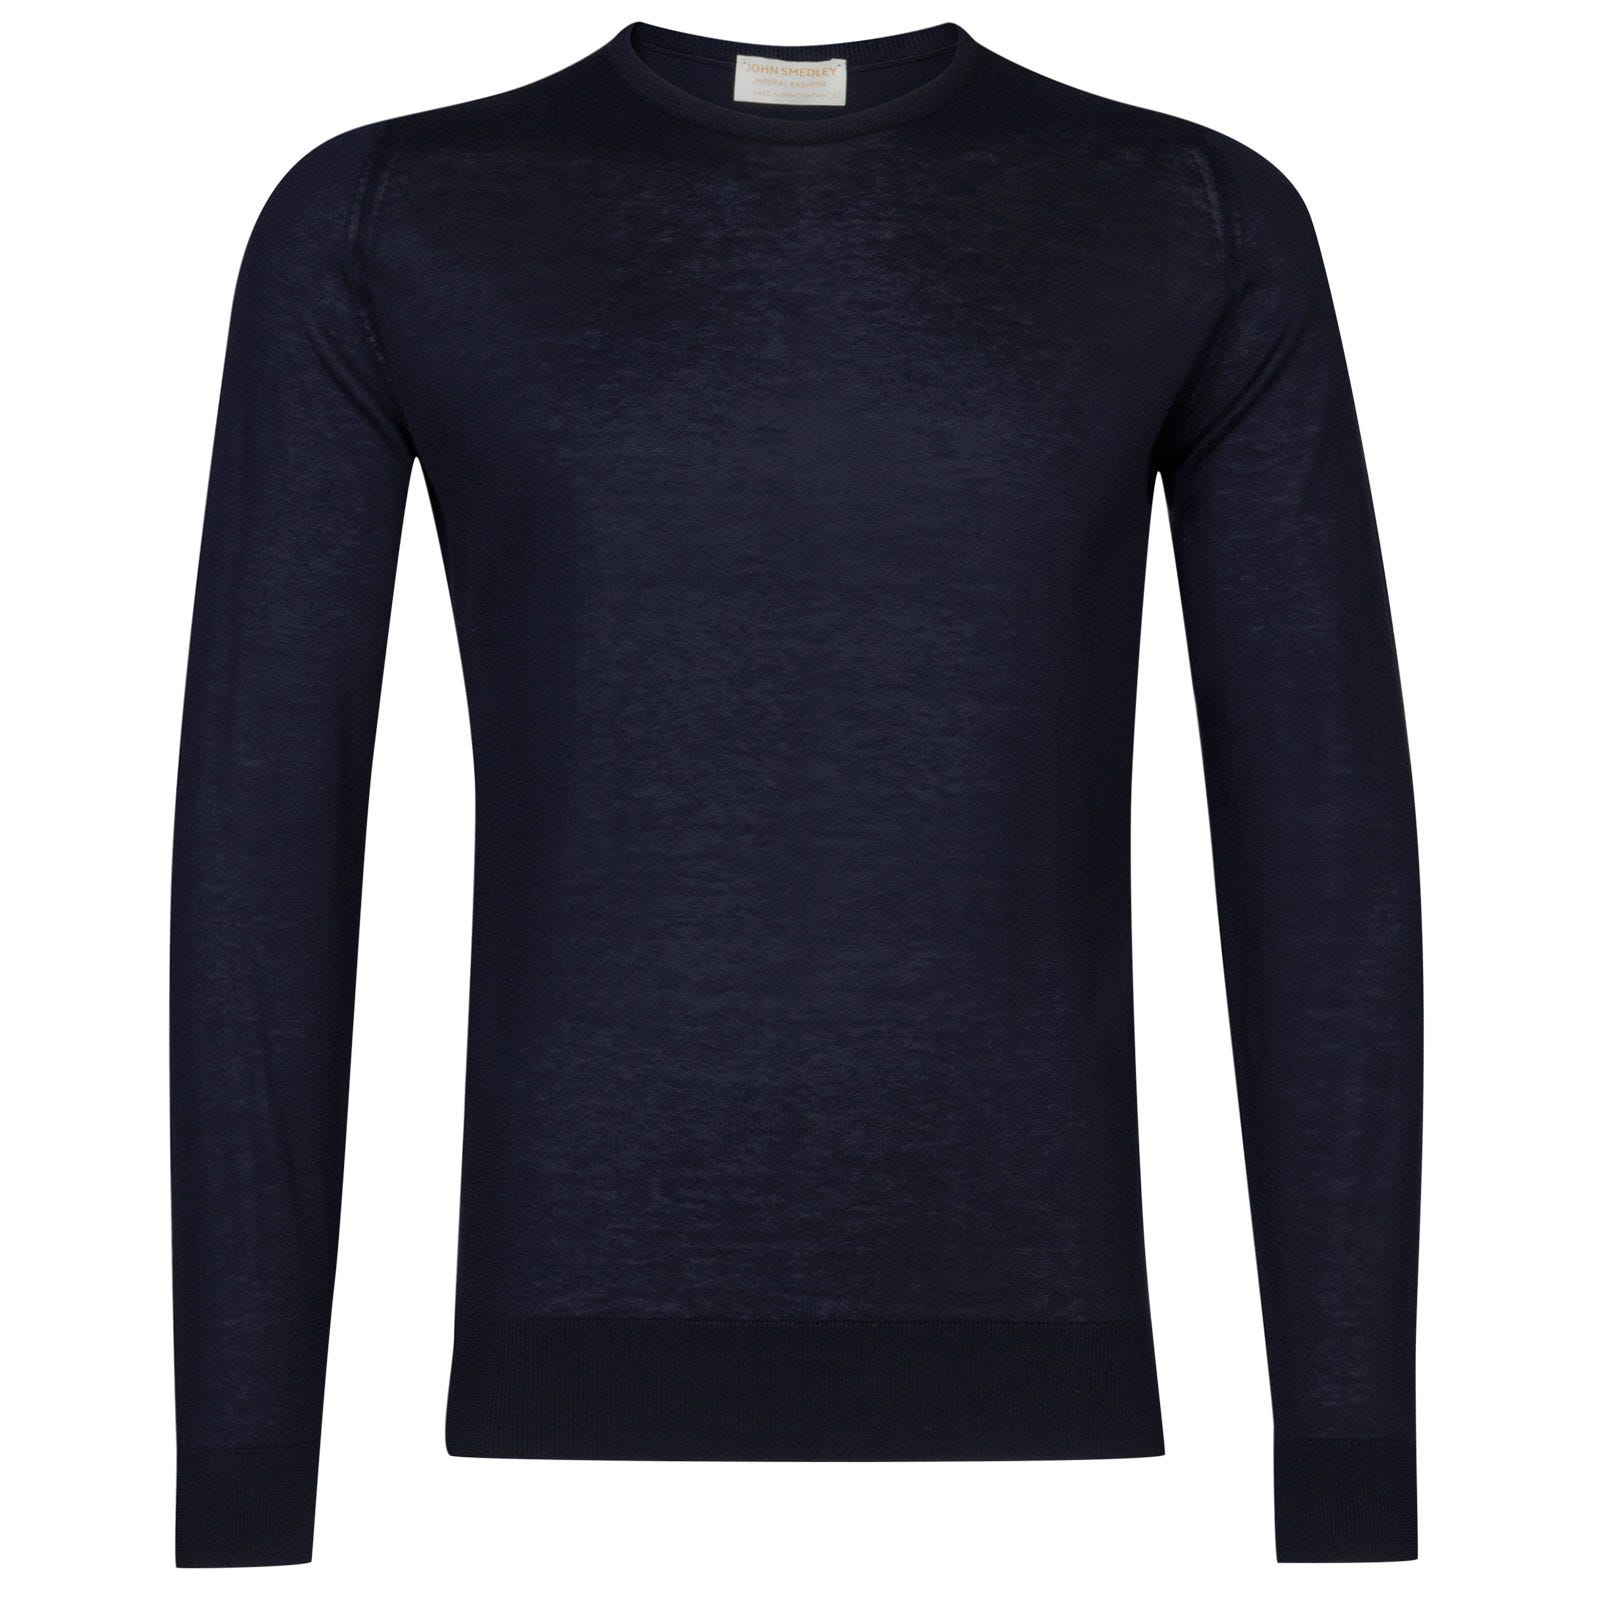 John Smedley theon Sea Island Cotton and Cashmere Pullover in Navy-M